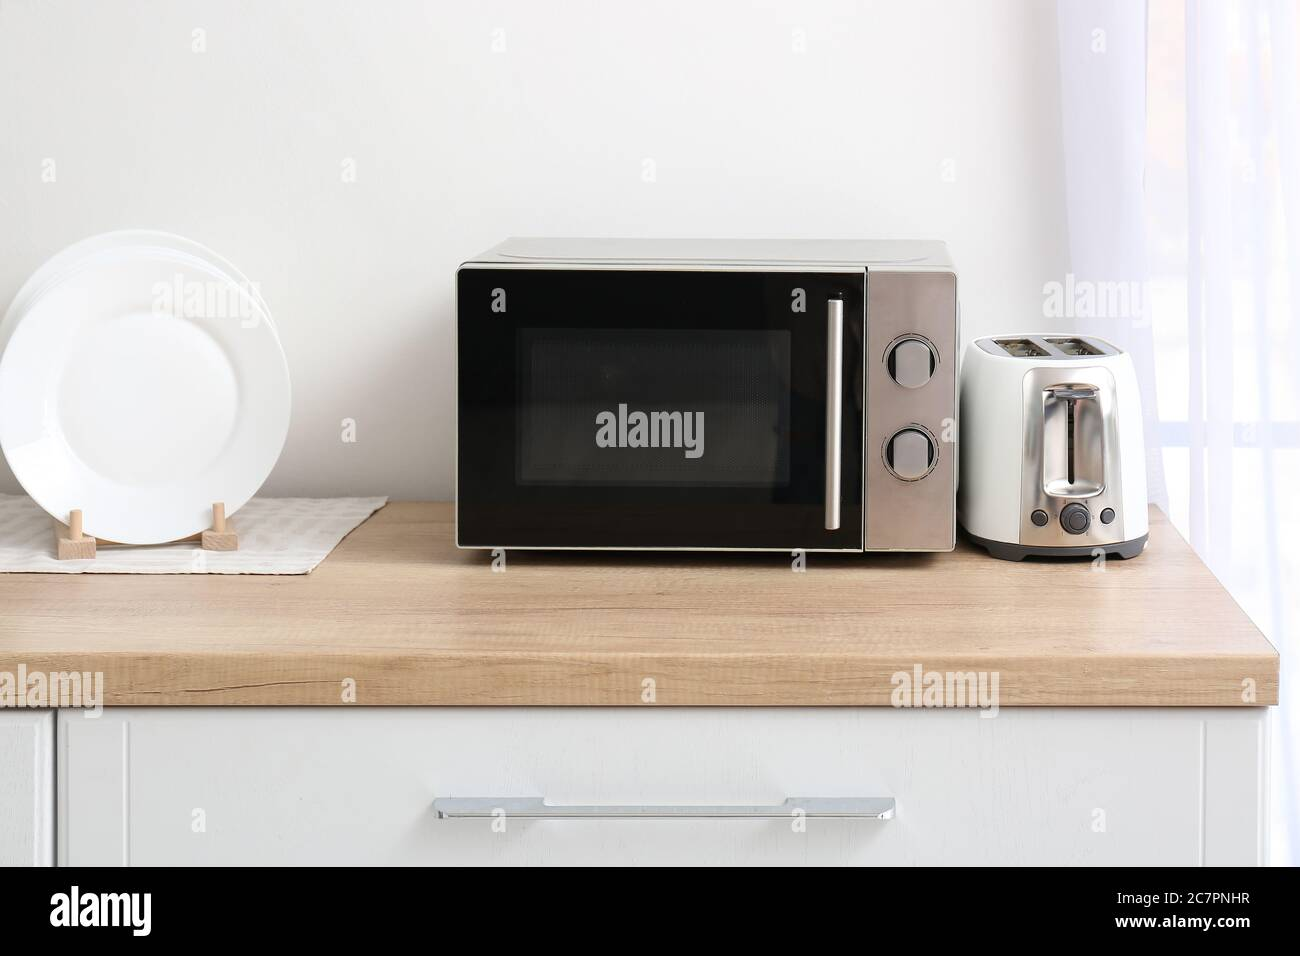 https www alamy com microwave oven with toaster on kitchen table image366220227 html